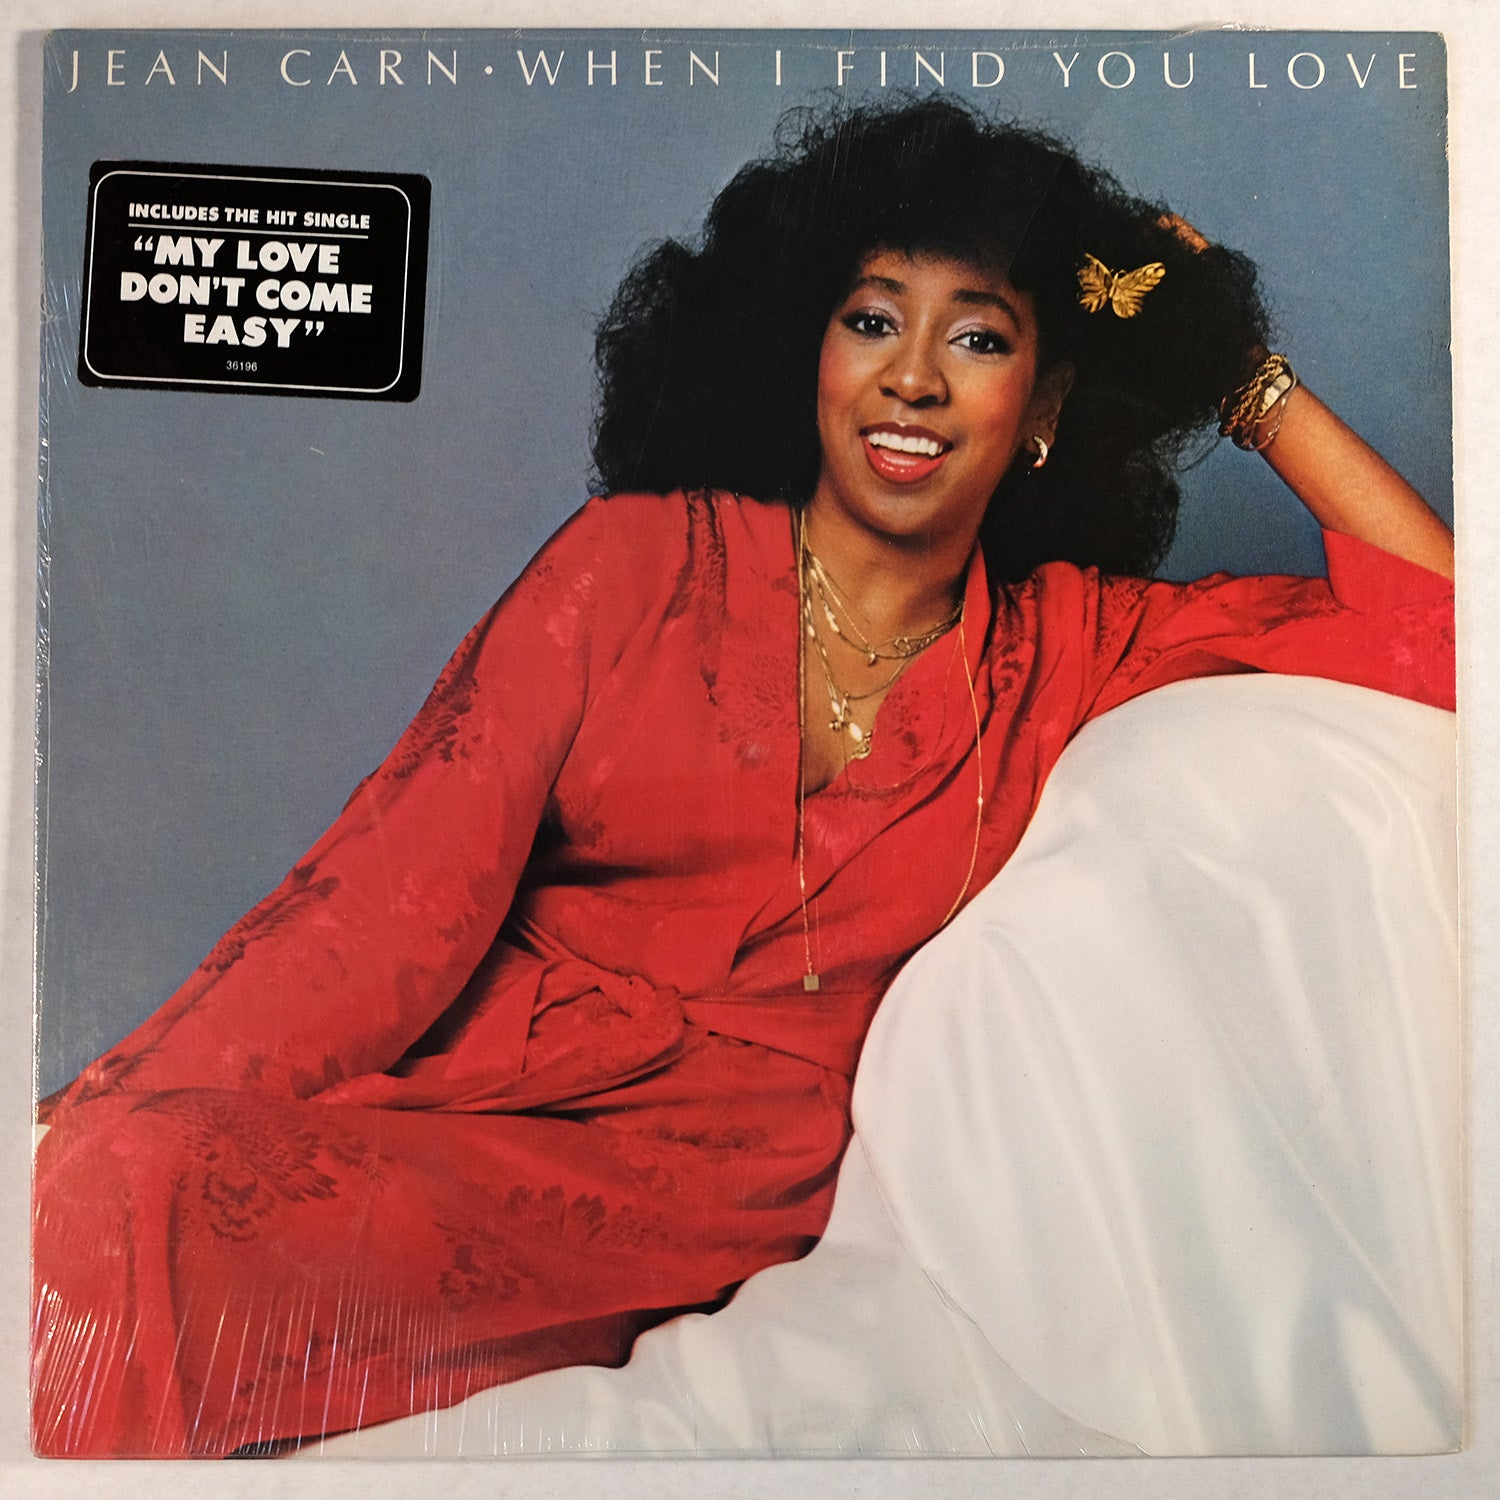 Jean Carn, When I Find You Love